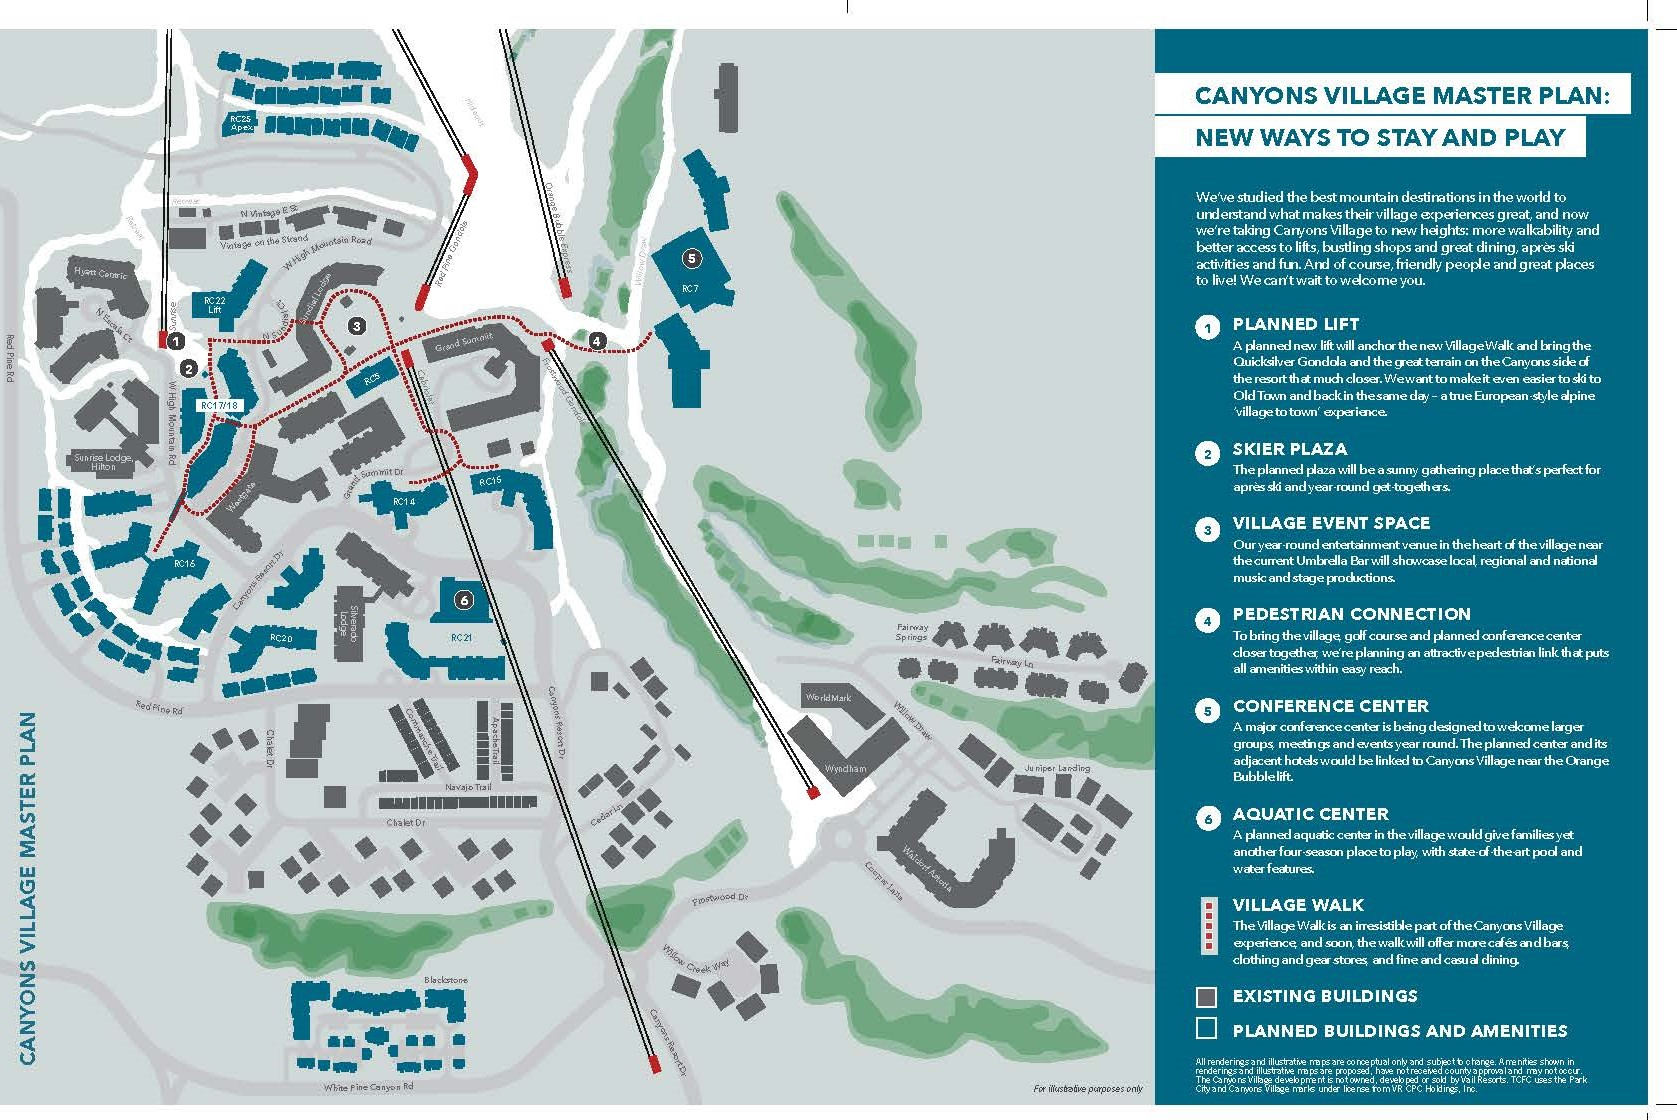 Master Plan For Canyons Village